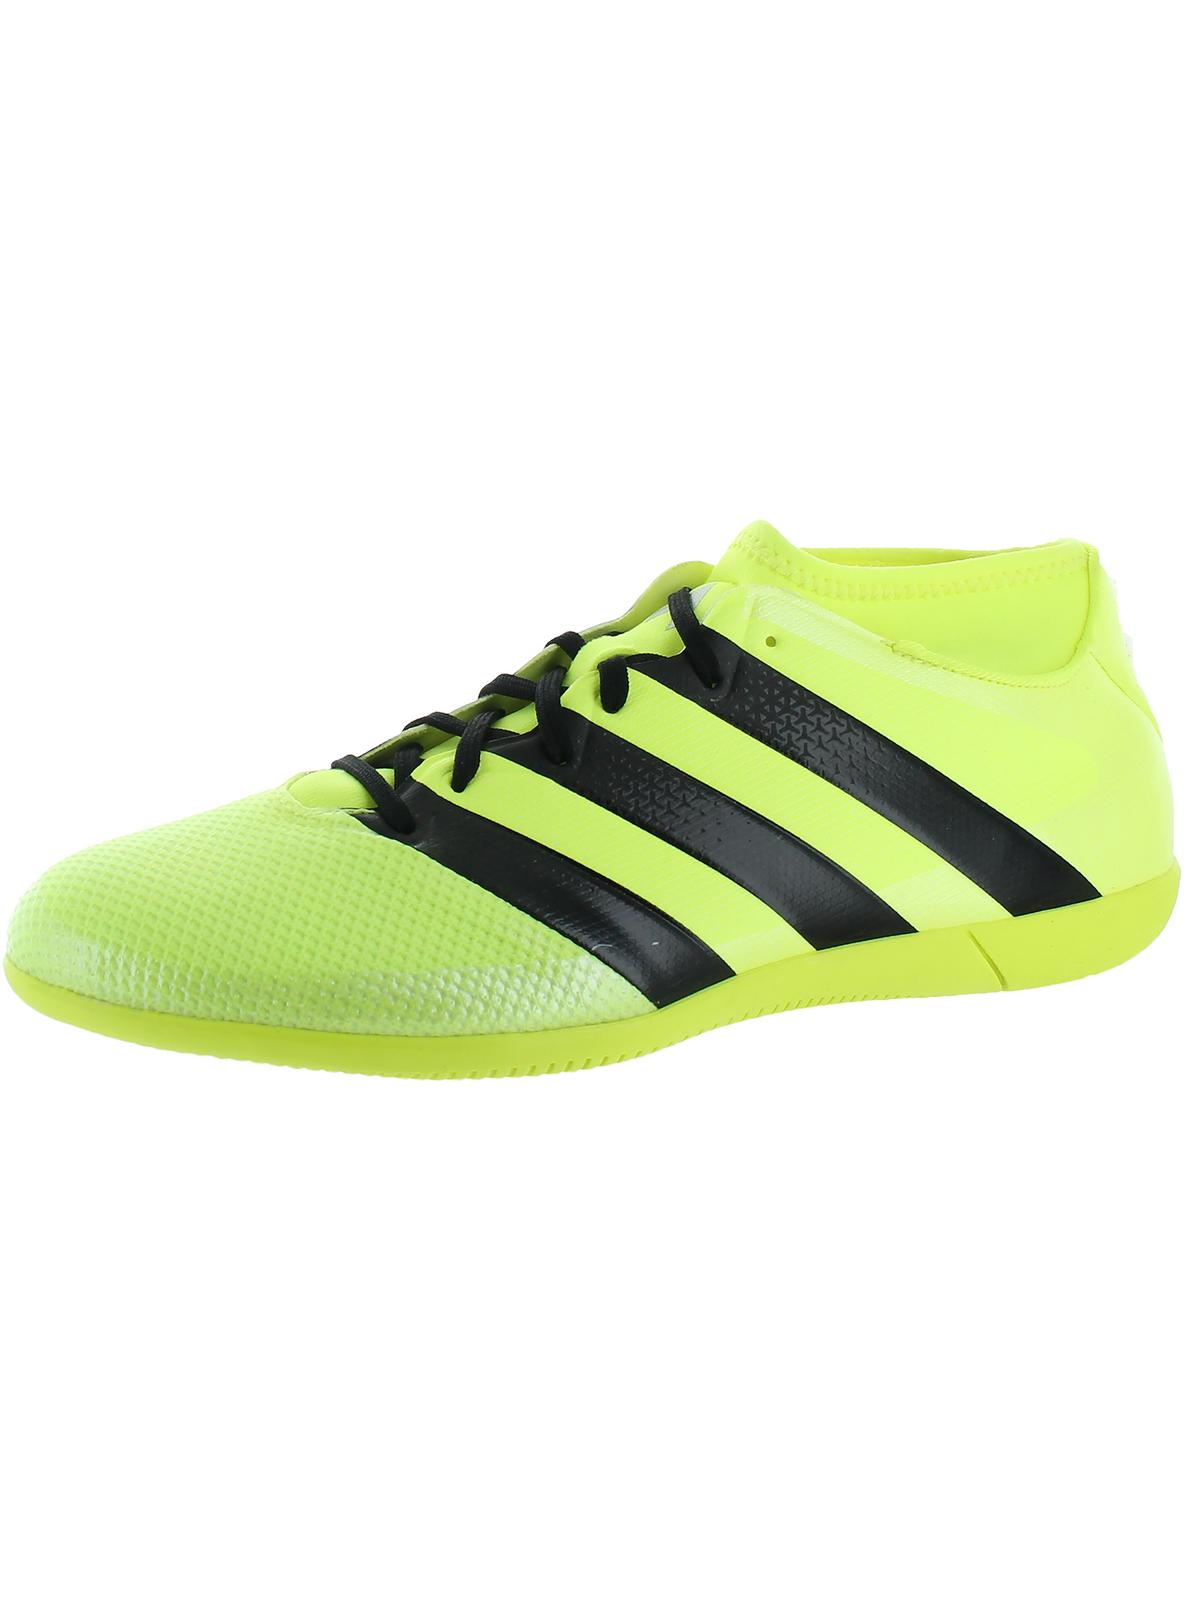 Adidas Mens Ace 16.3 Primemesh Non Marking Athletic Soccer Shoes by Adidas